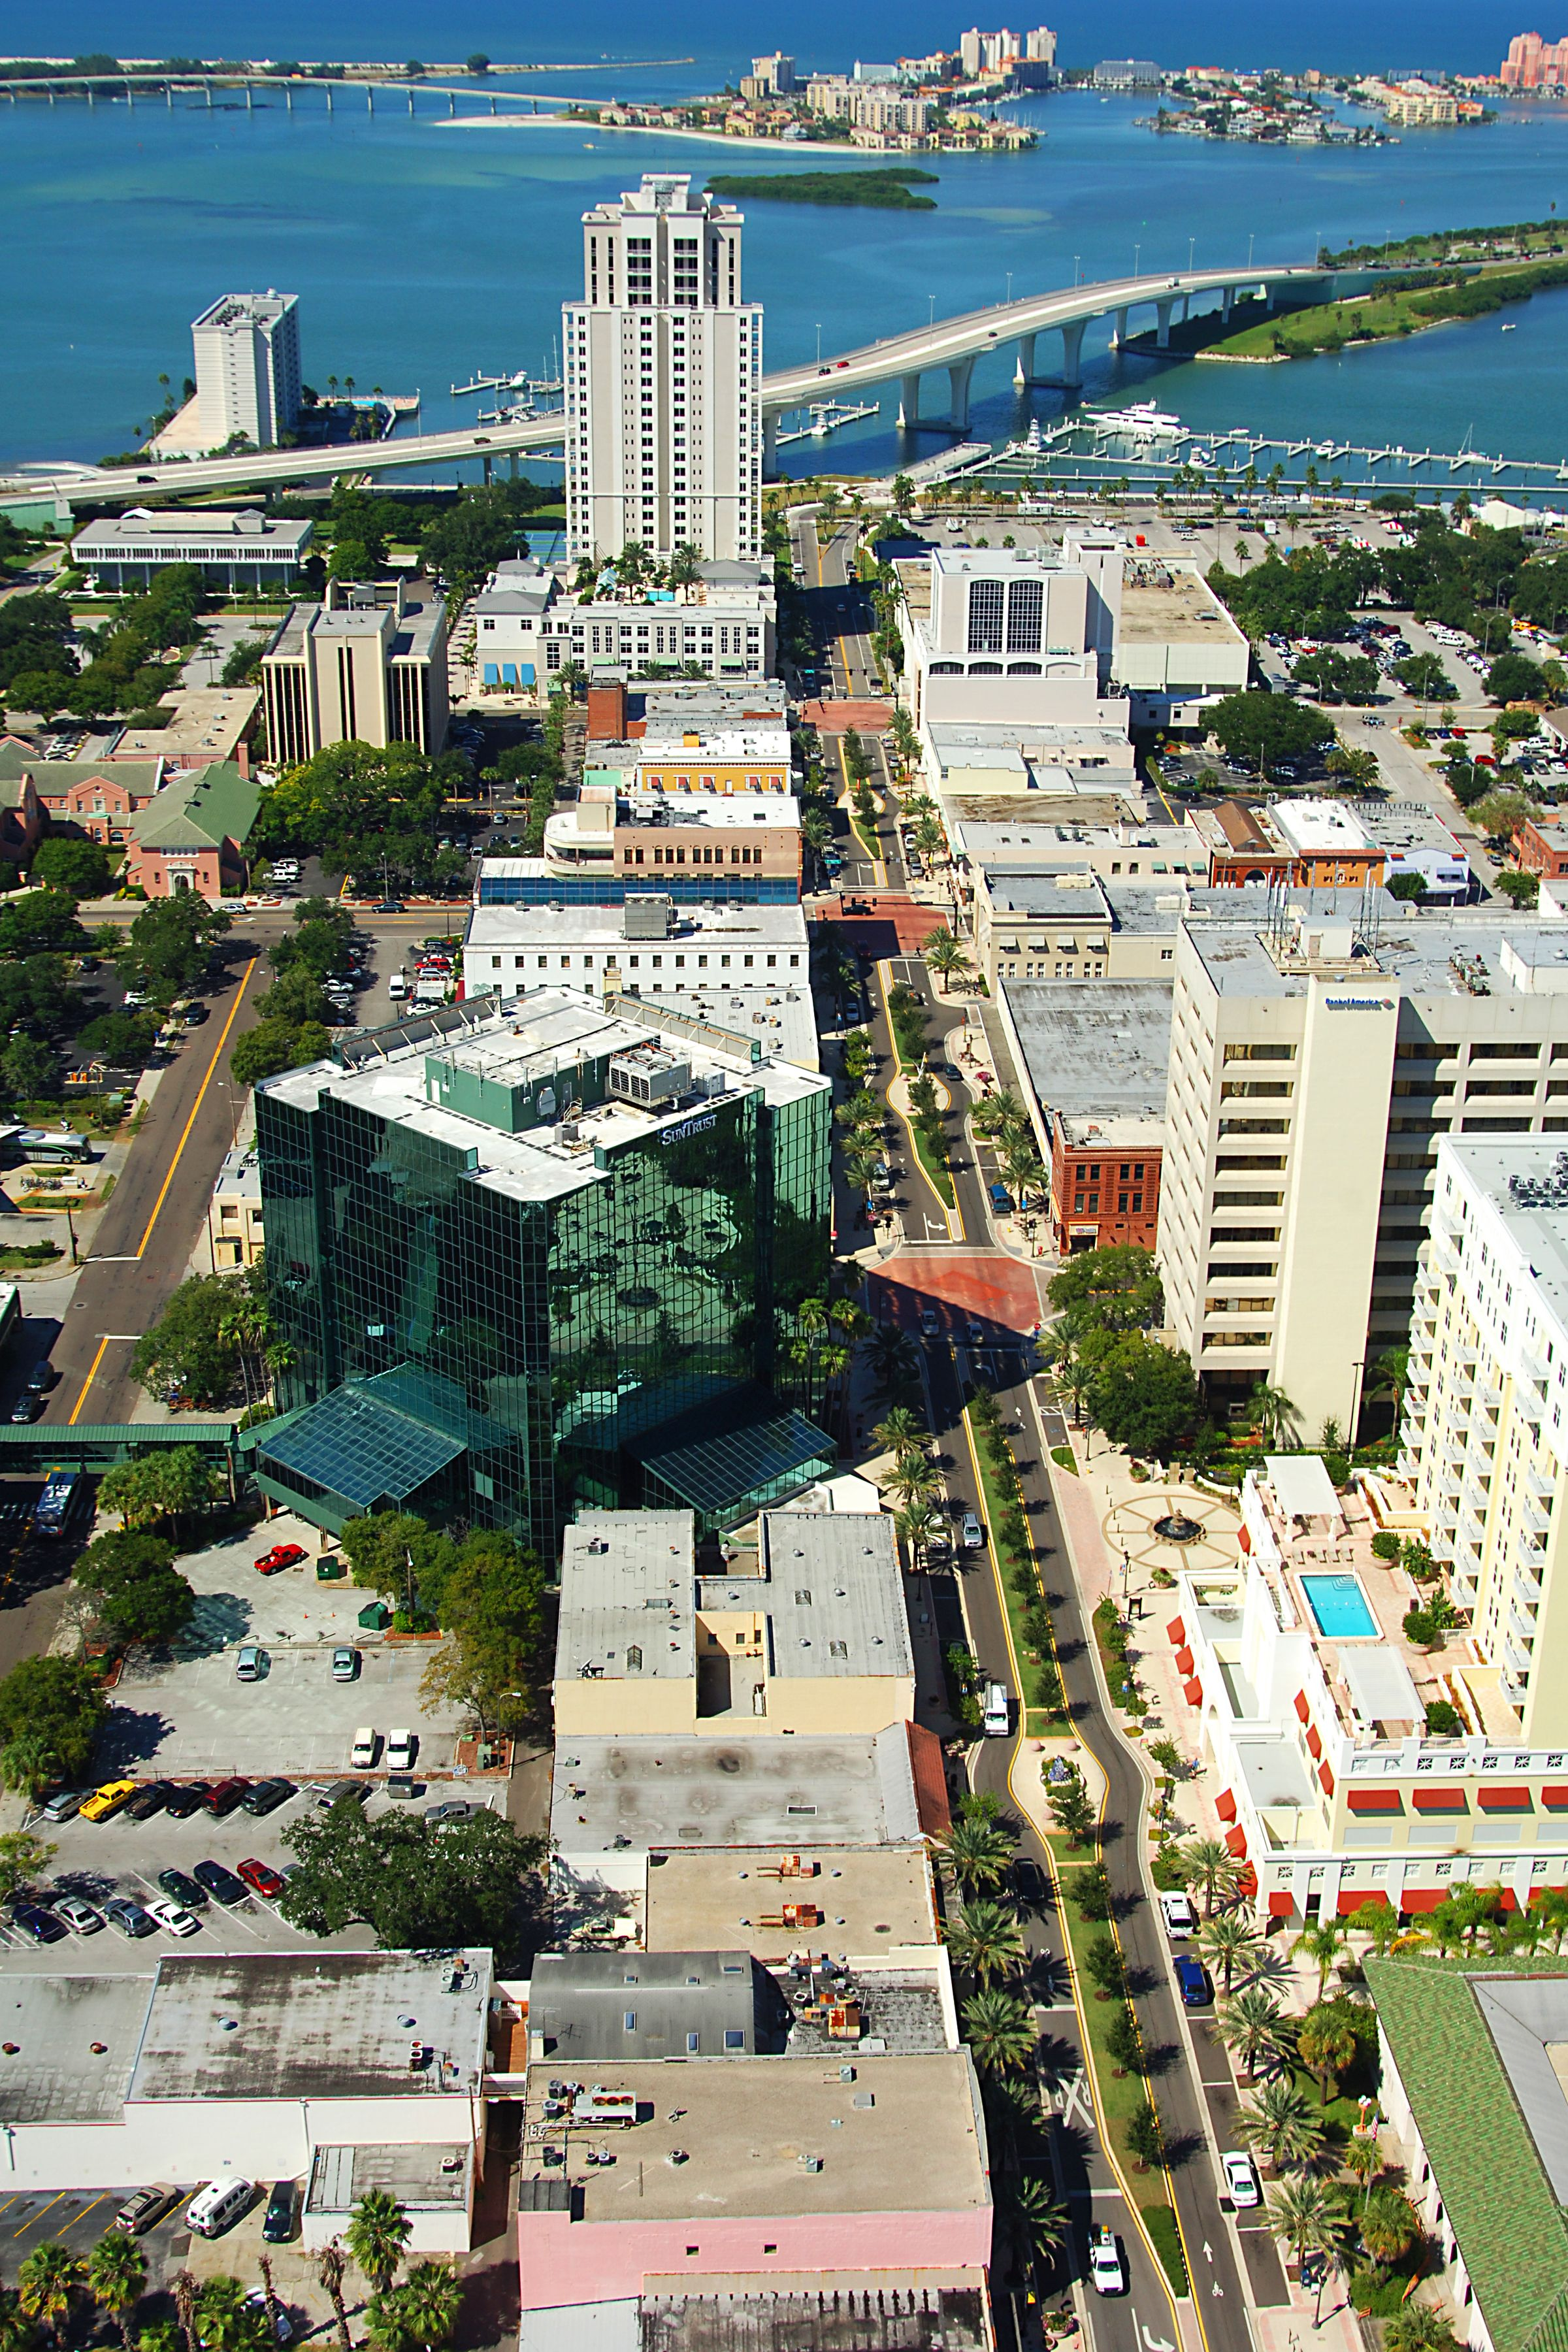 Downtown Clearwater, FL Looking Toward The Beach. Make